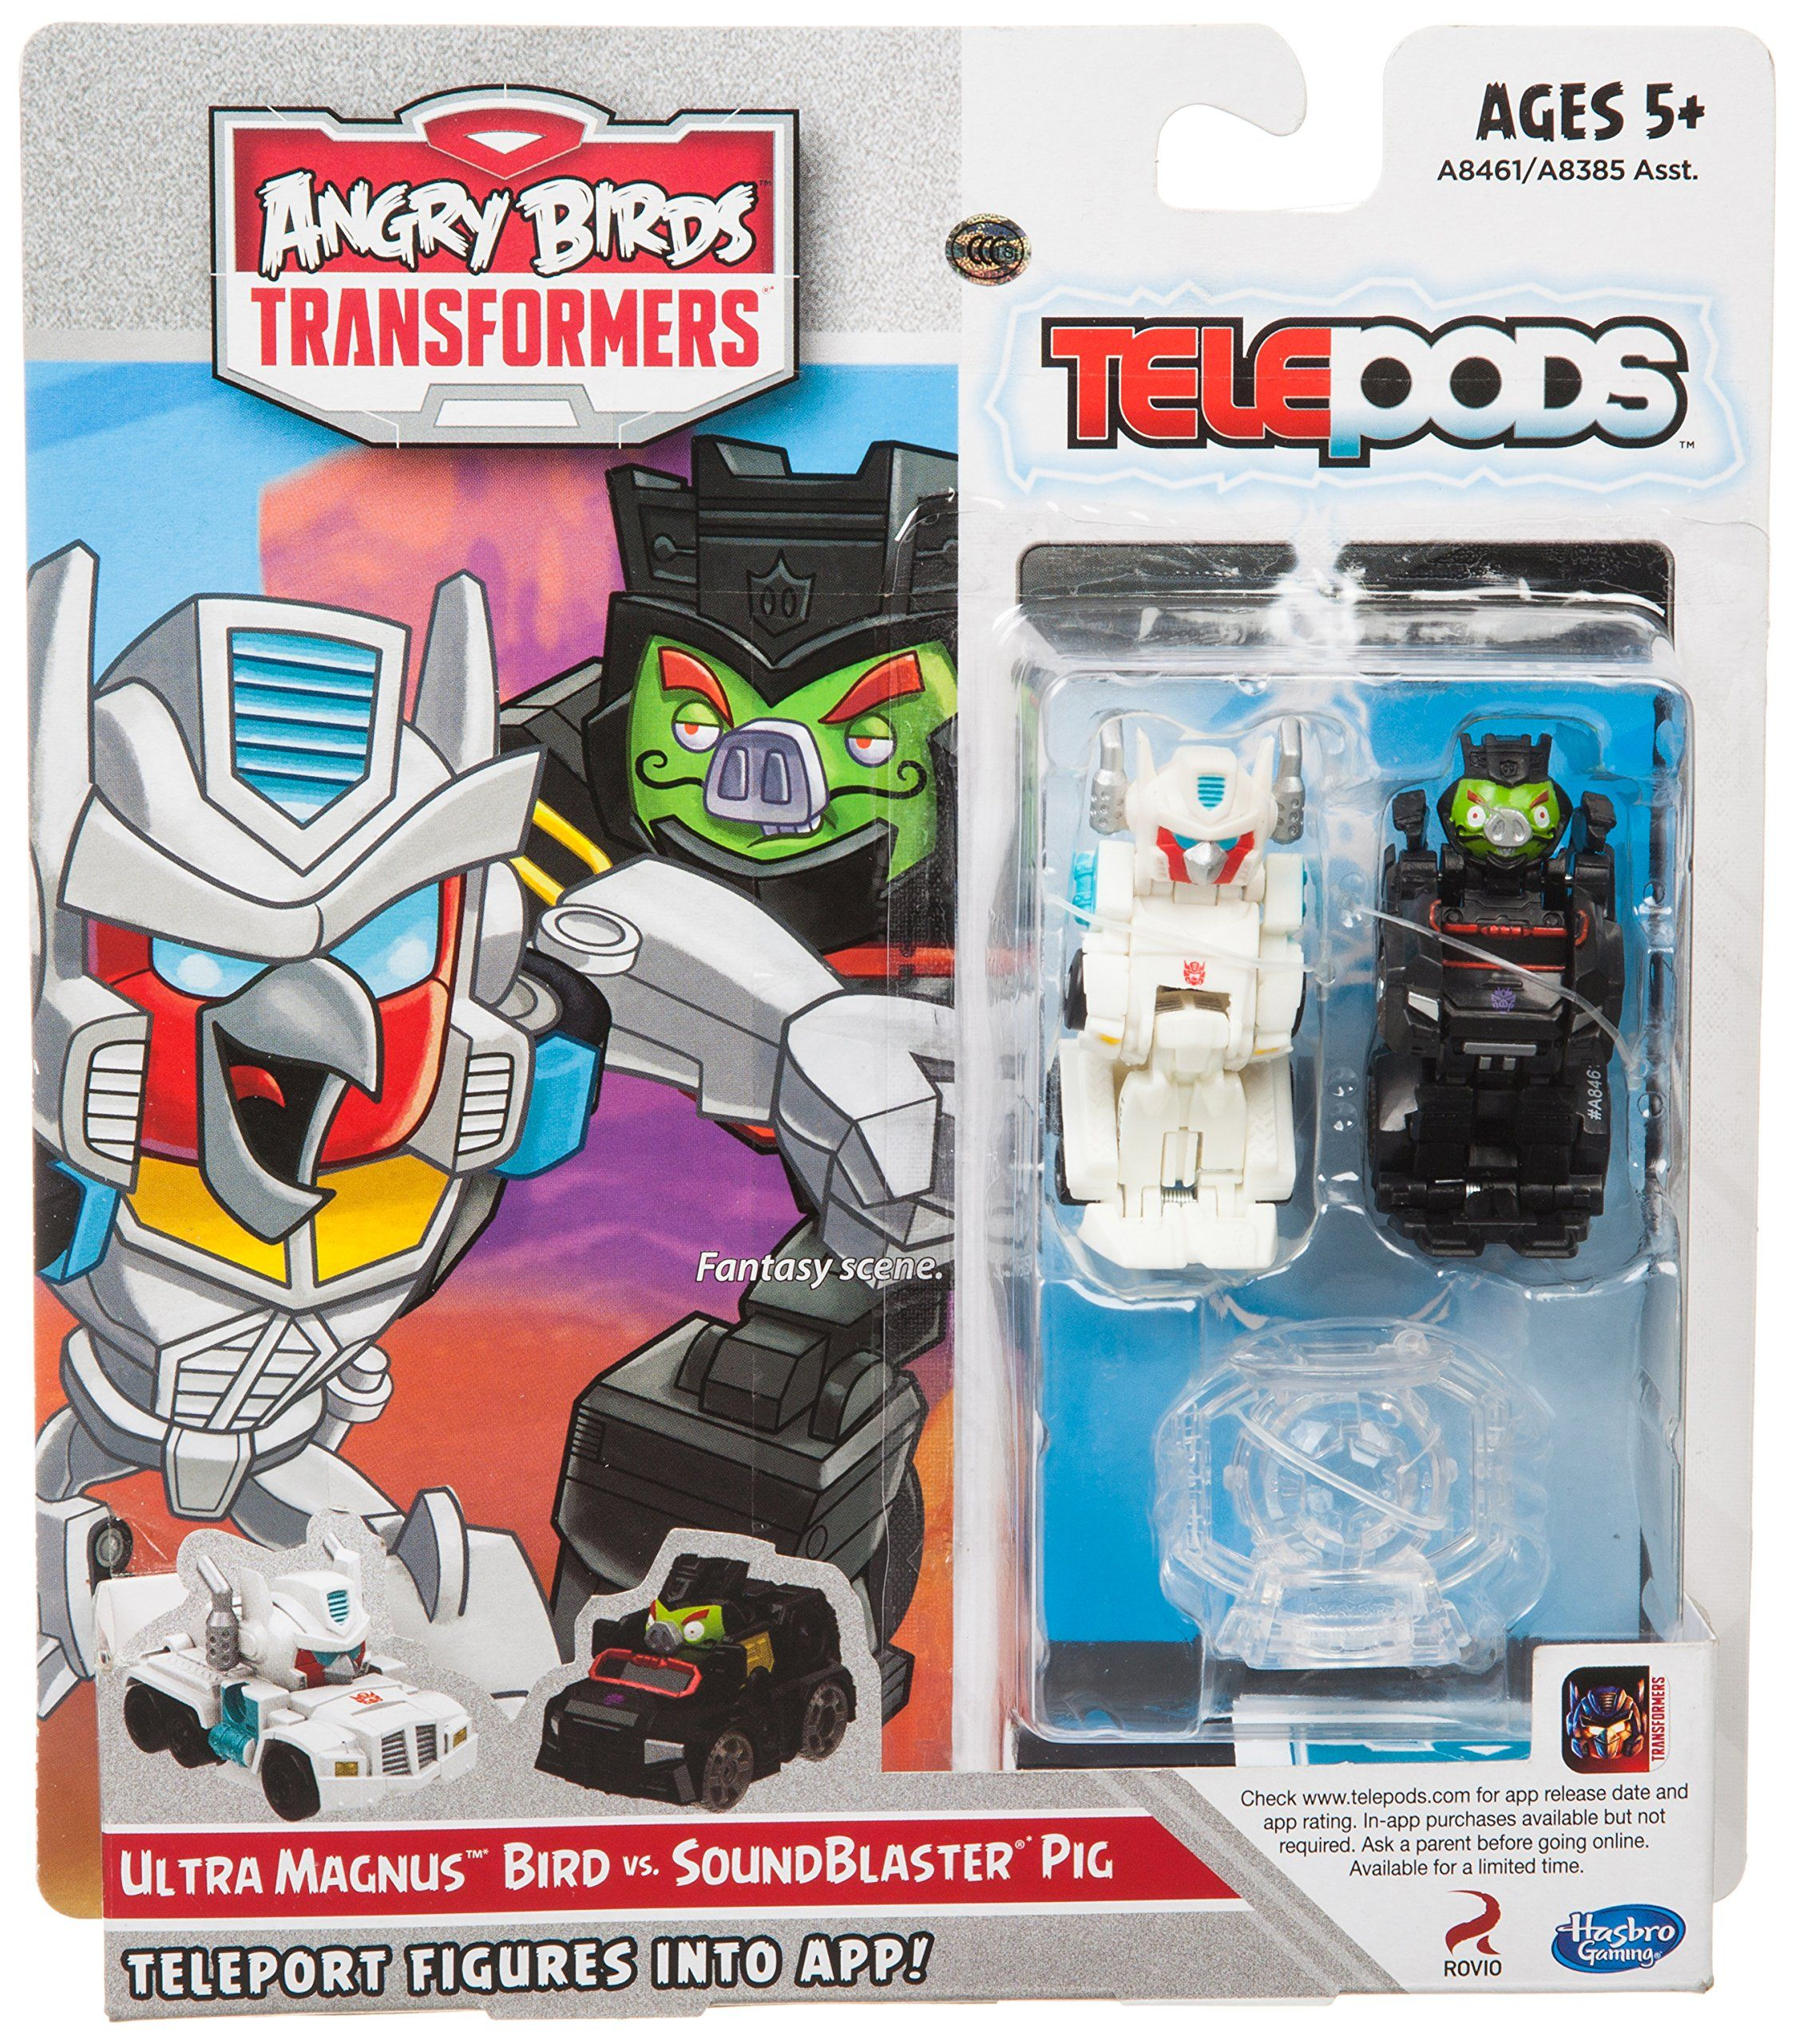 Angry birds transformers telepods ultra magnus